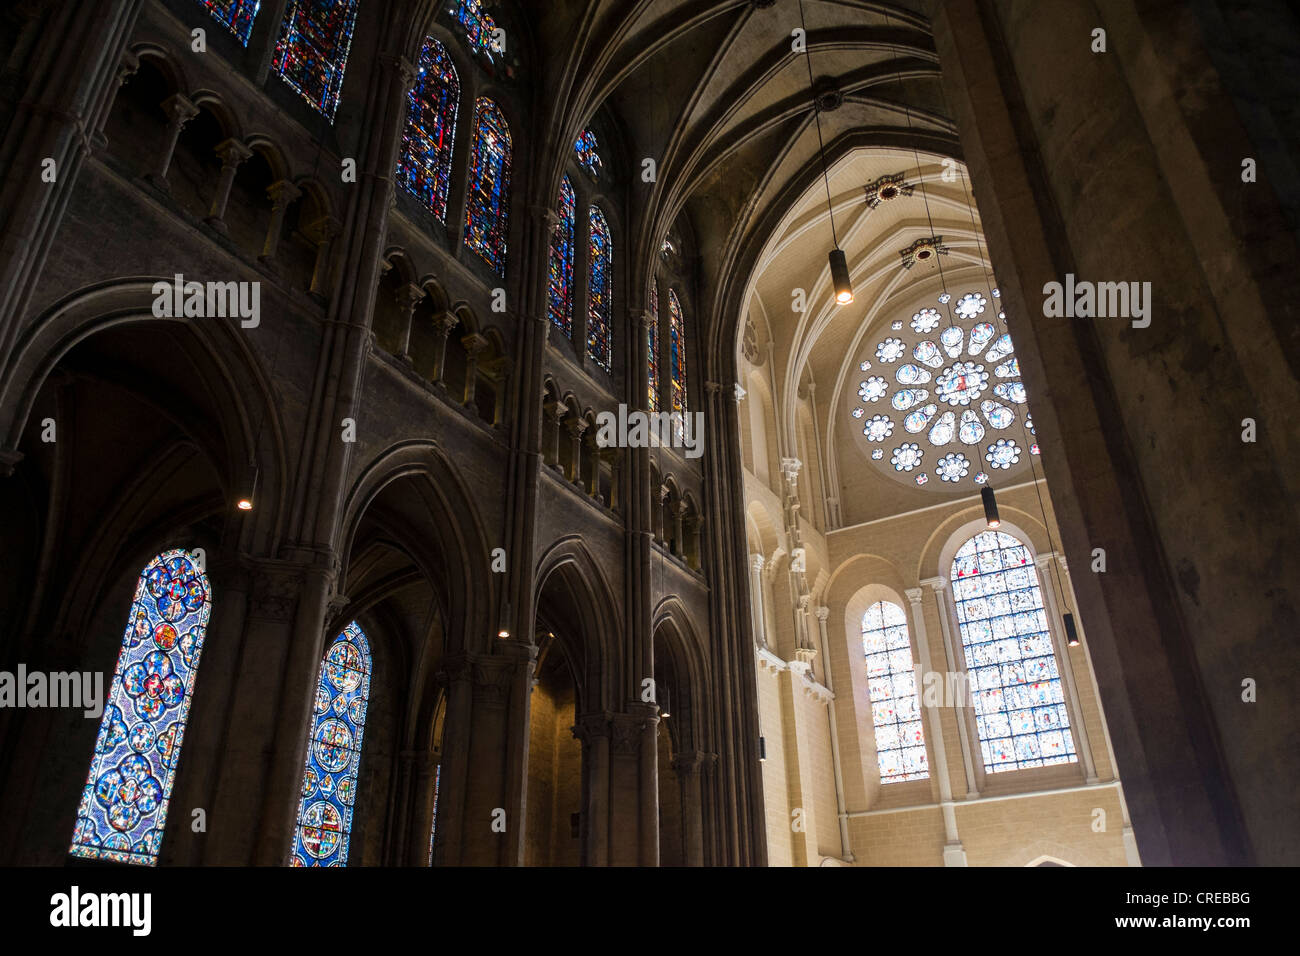 Cleaning And Restoration Work At Chartres Cathedral In